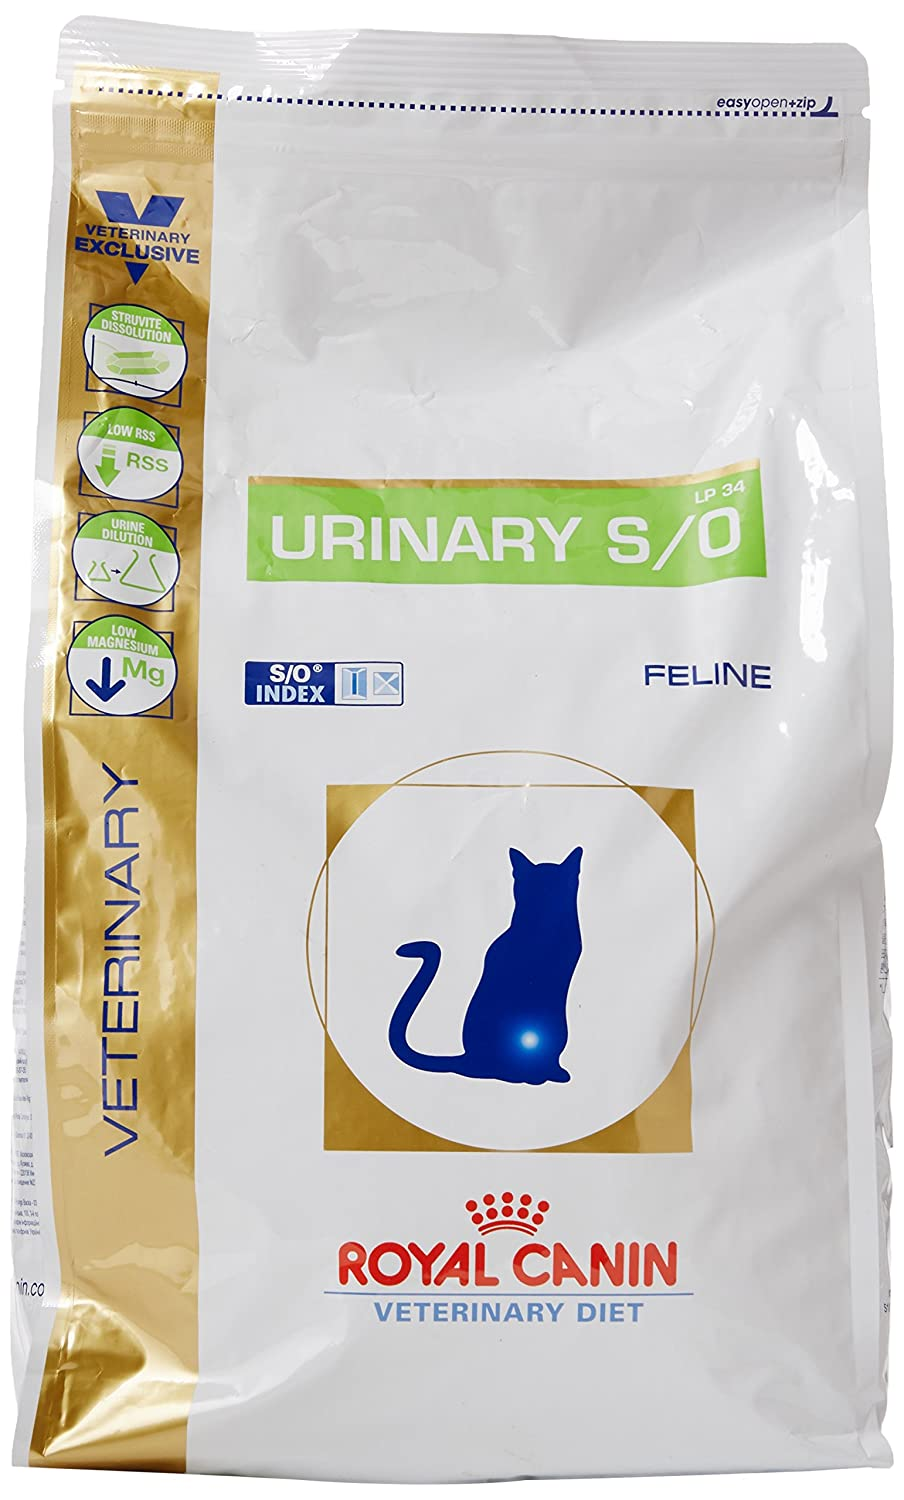 Royal Canin C-58254 Diet Feline Urinary - 3.5 Kg: Amazon.es: Productos para mascotas